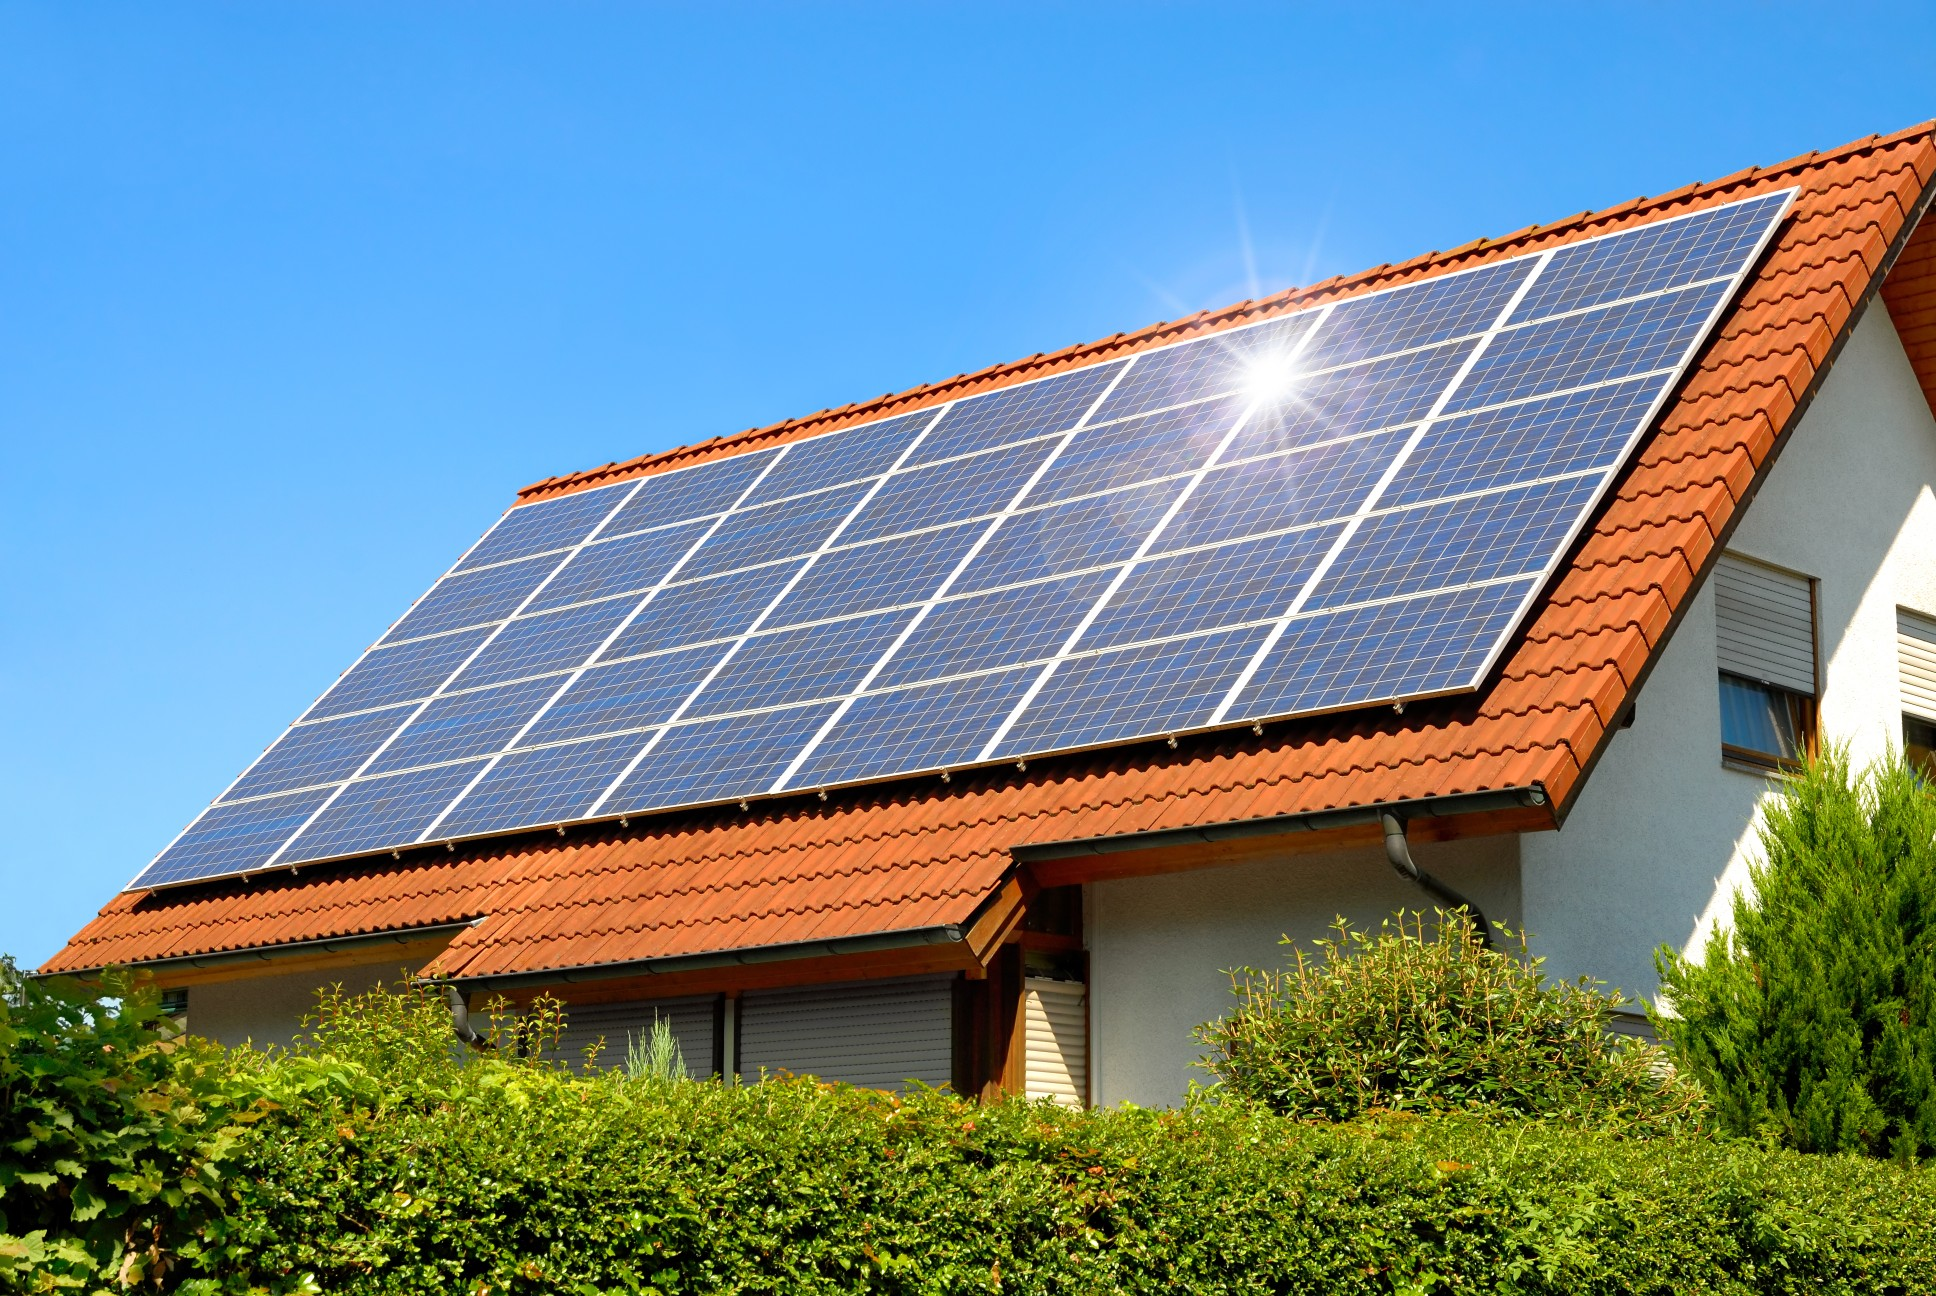 solar home with panels